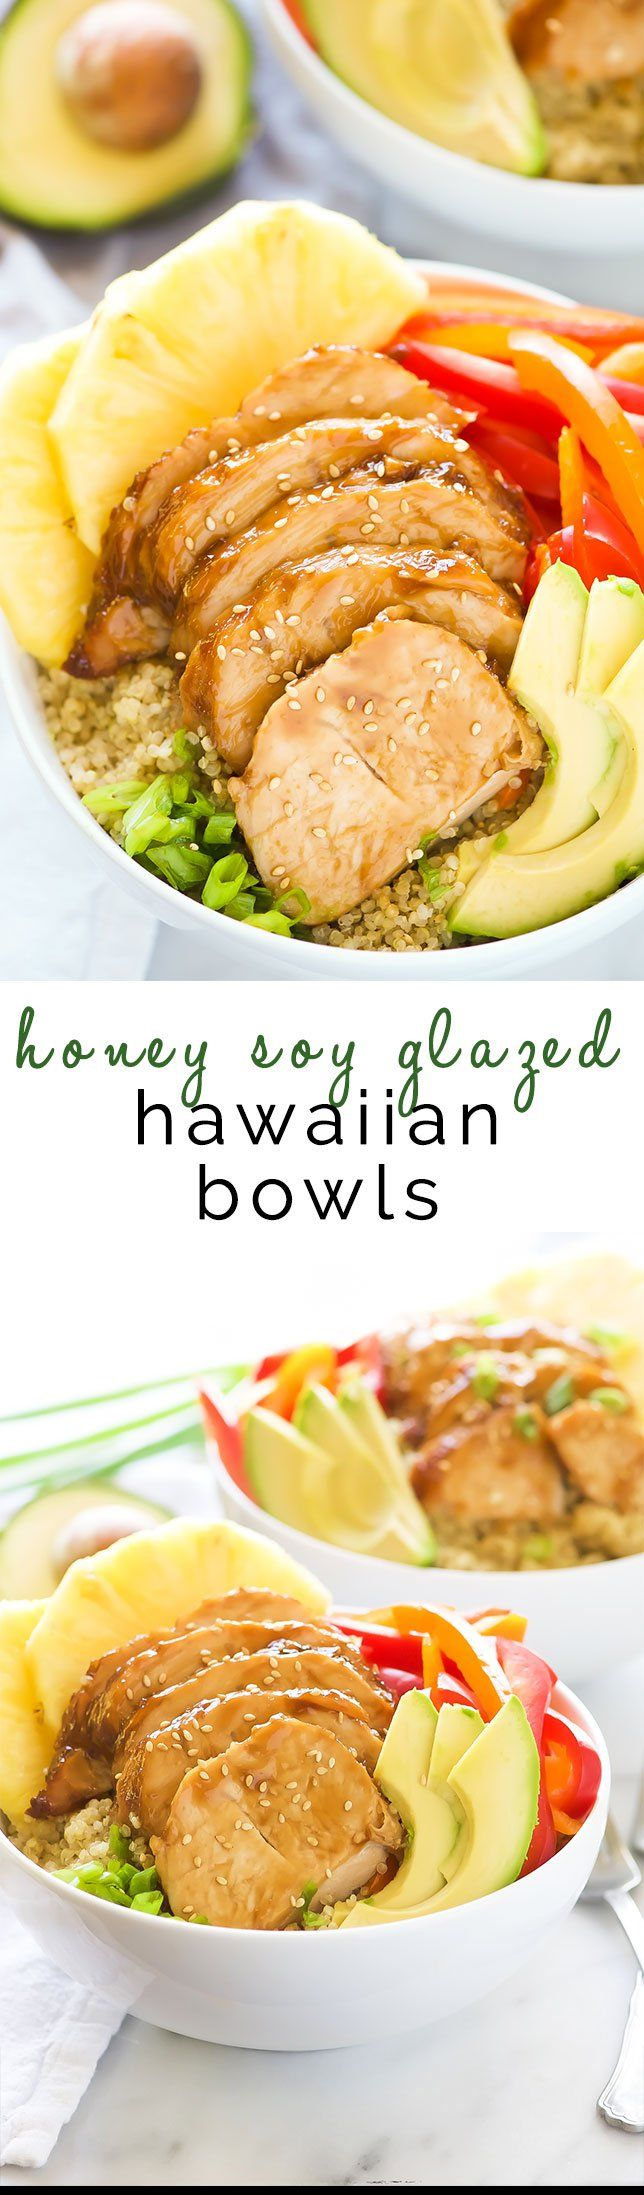 Honey Soy Glazed Hawaiian Bowls pack a serious flavor punch! Honey soy glazed turkey tenderloins are baked then added to a bowl filled with rice, juicy pineapple, peppers, onions, and avocados. This one dish wonder is perfect for any weeknight dinner!